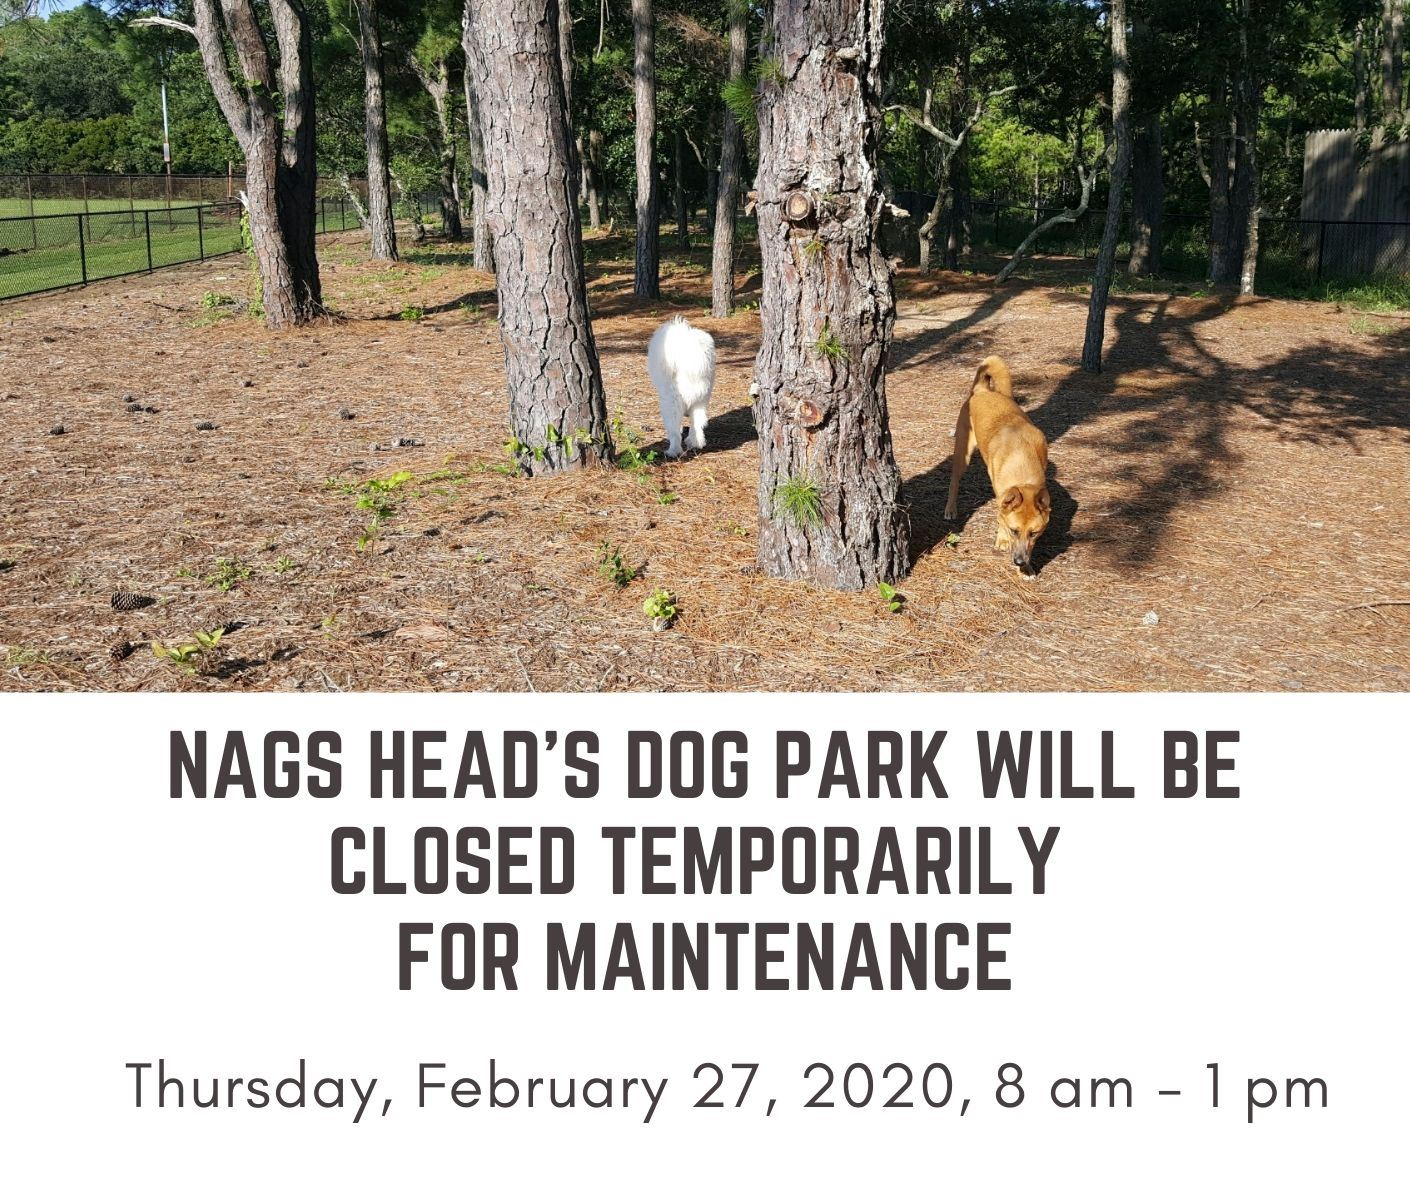 Nags Head's Dog Park Closed for Maintenance Feb 27 2020, 8-1 pm